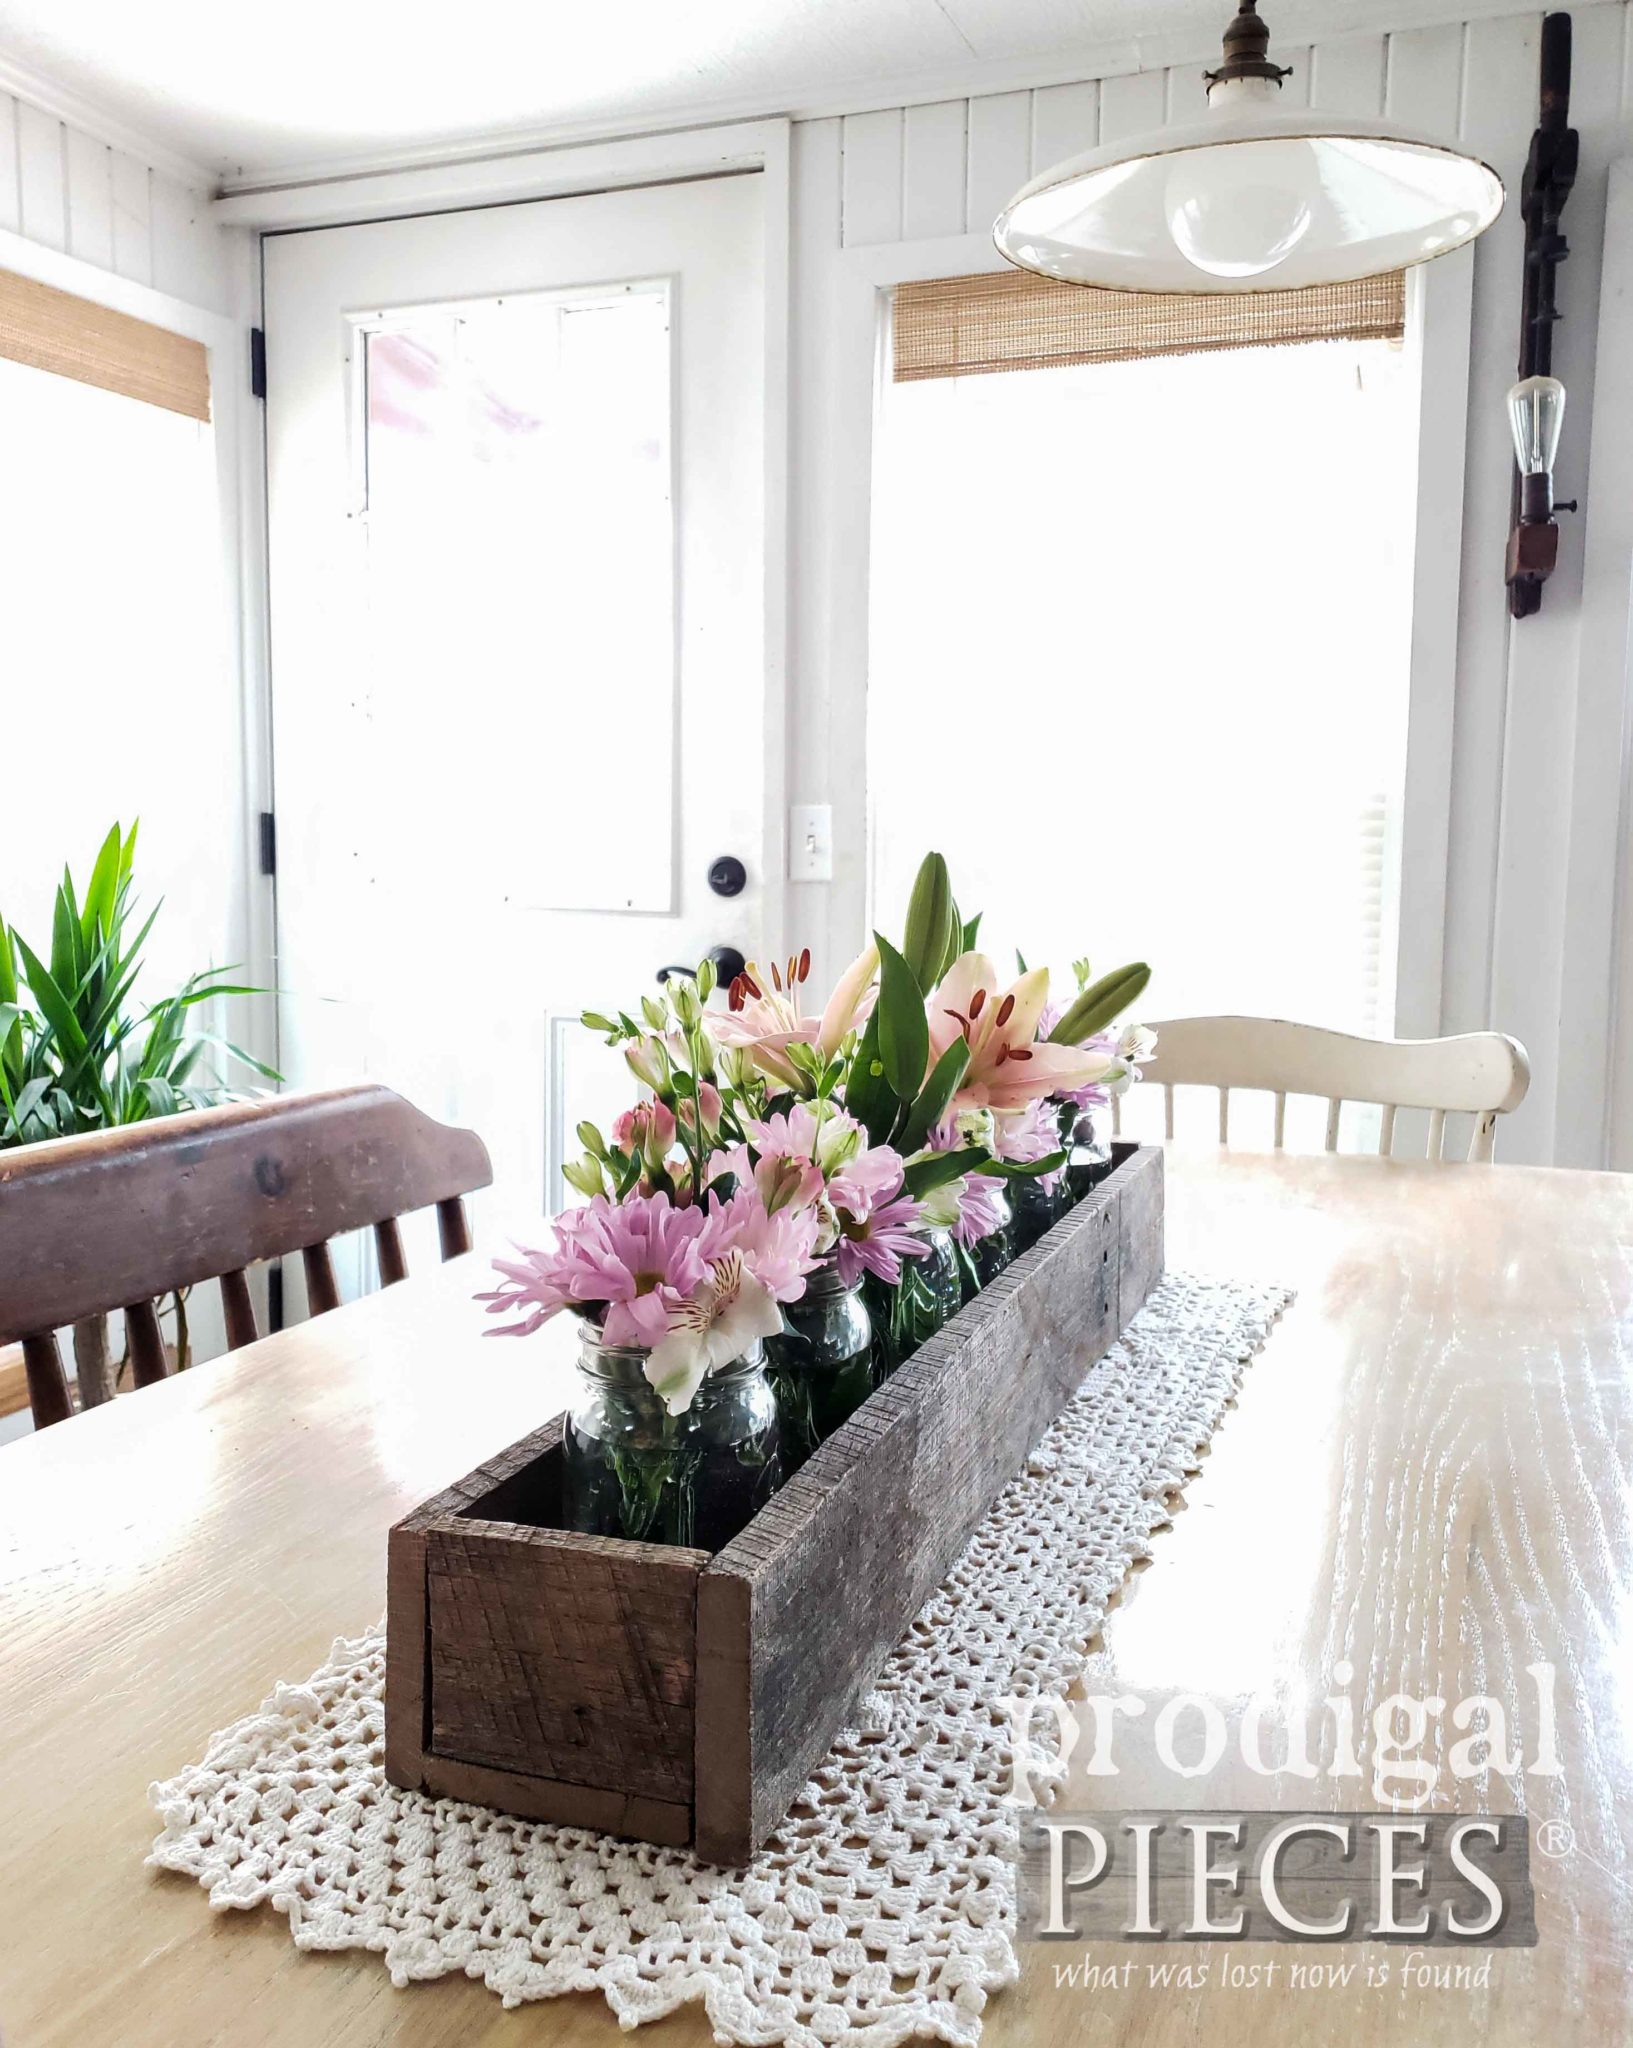 Rustic Farmhouse Centerpiece Trough Filled with Canning Jars and Fresh Blooms by Larissa of Prodigal Pieces | prodigalpieces.com #prodigalpieces #flowers #diy #farmhouse #home #homedecor #handmade #homedecorideas